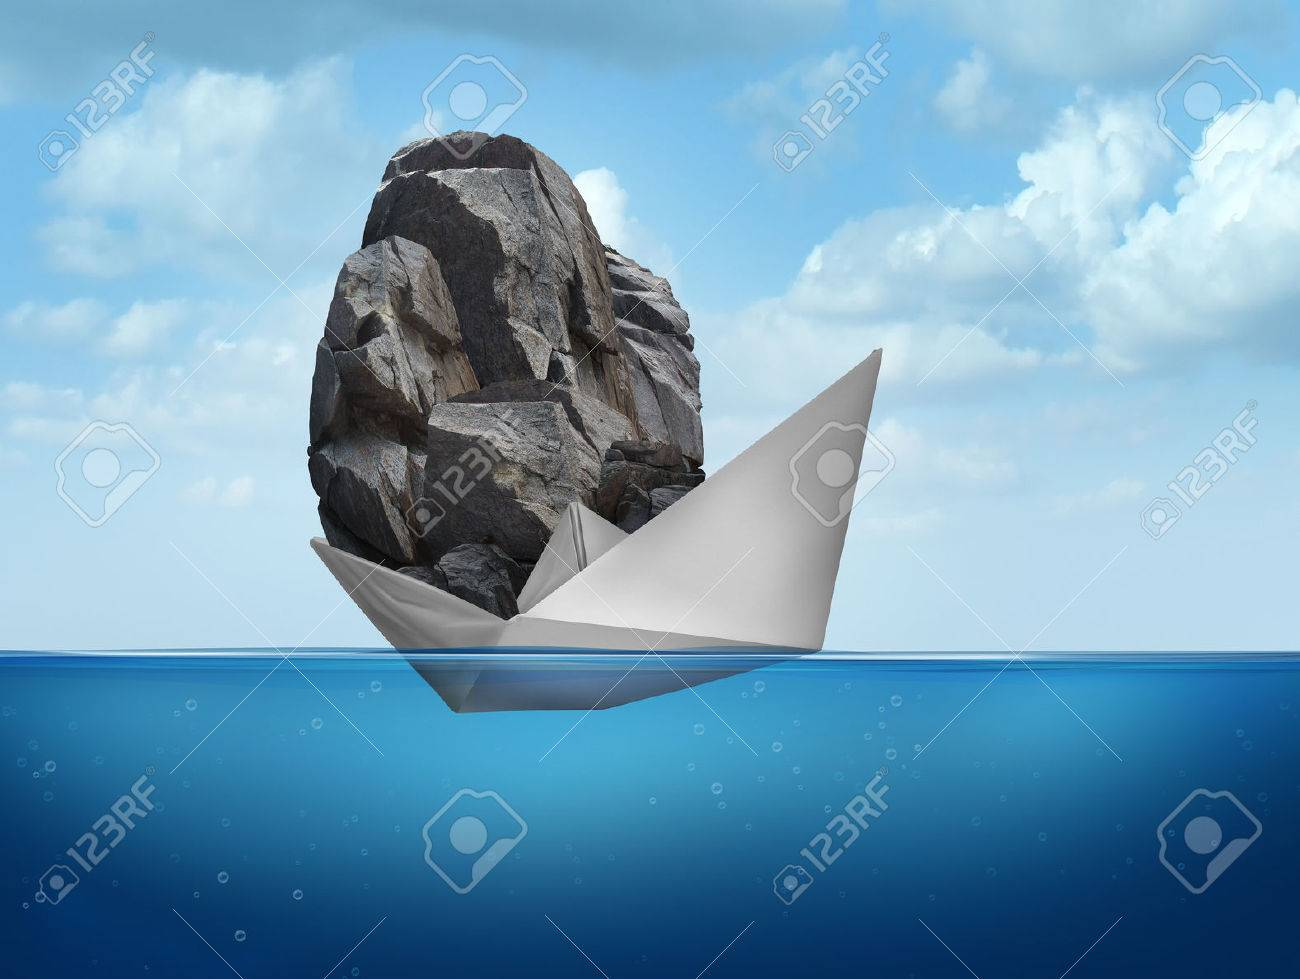 Impossible concept as a paper boat transporting a heavy rock boulder as a business symbol for overachieving and the power of determined potential to do things that are unbelievable. - 38697532